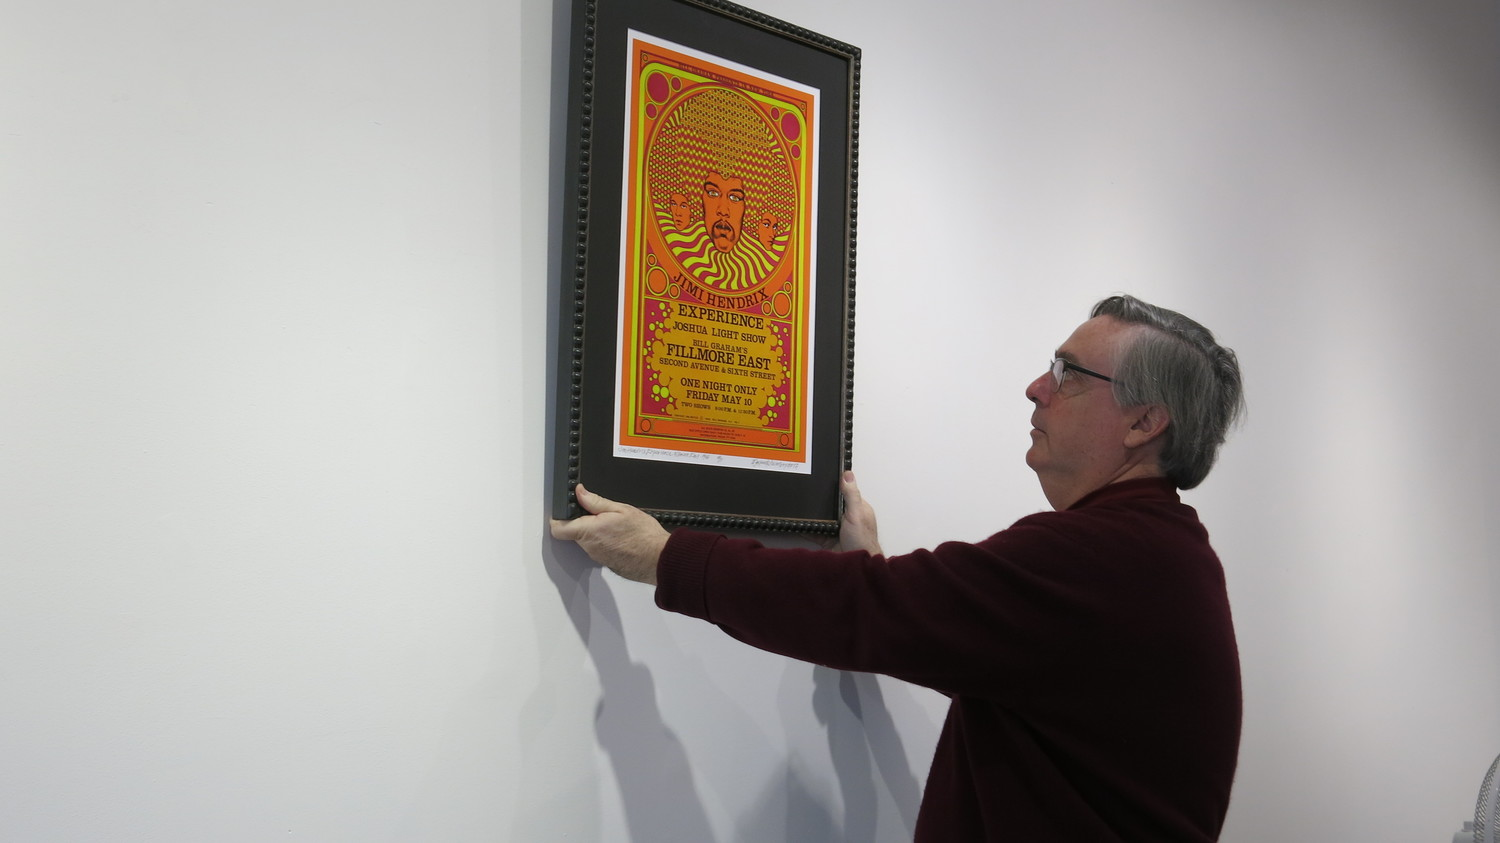 Ted Bahr, the owner of Oyster Bay's Bahr Gallery, has all kinds of psy-